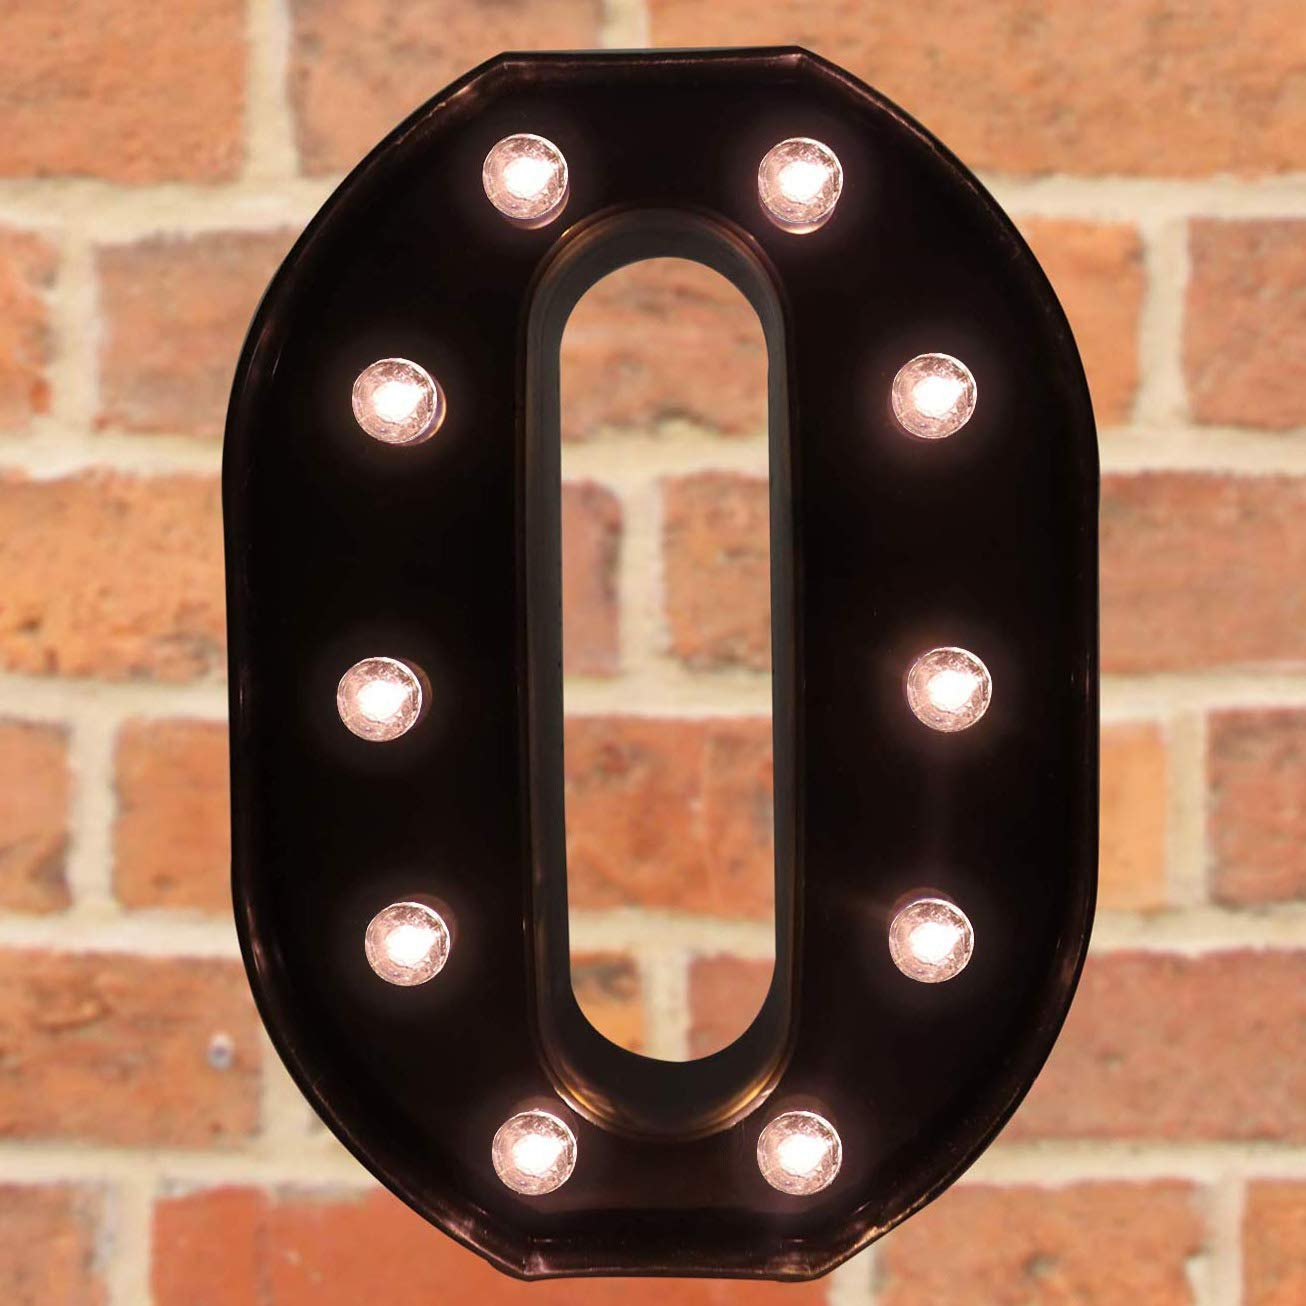 Pooqla Decorative LED Illuminated Letter Marquee Sign - Alphabet Marquee Letters with Lights for Wedding Birthday Party Christmas Night Light Lamp Home Bar Decoration O, Black